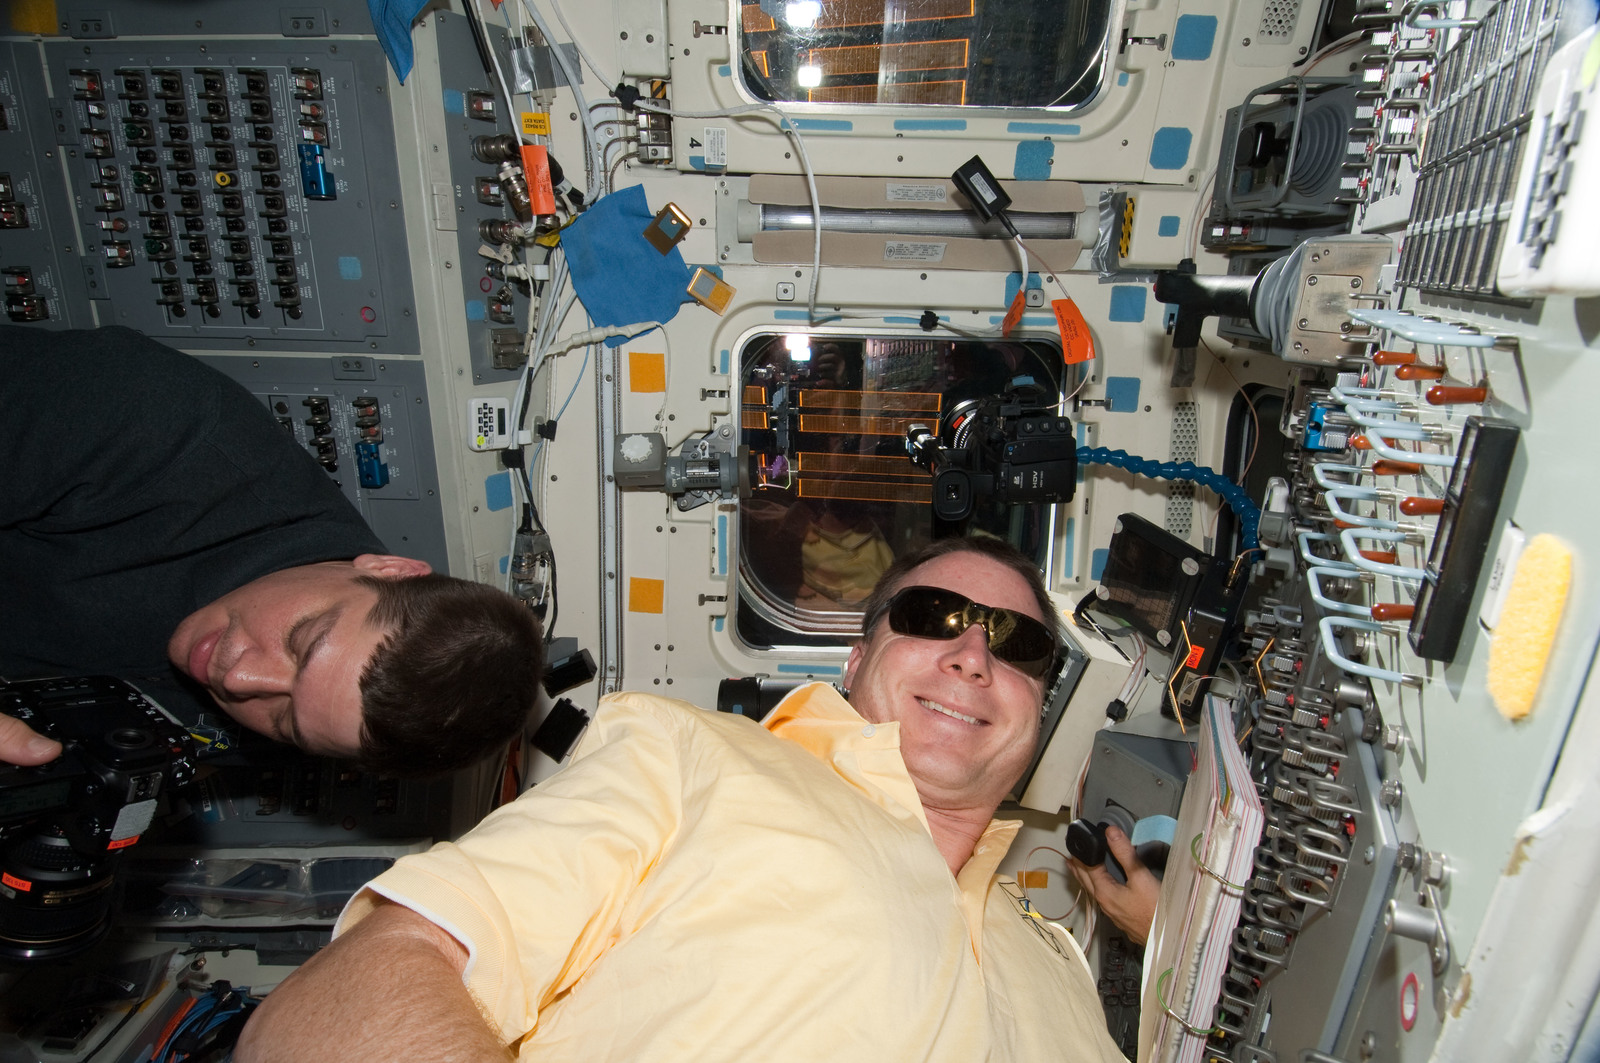 S130E012371 - STS-130 - Behnken and Virts on Aft FD during STS-130 Separation and Flyaround